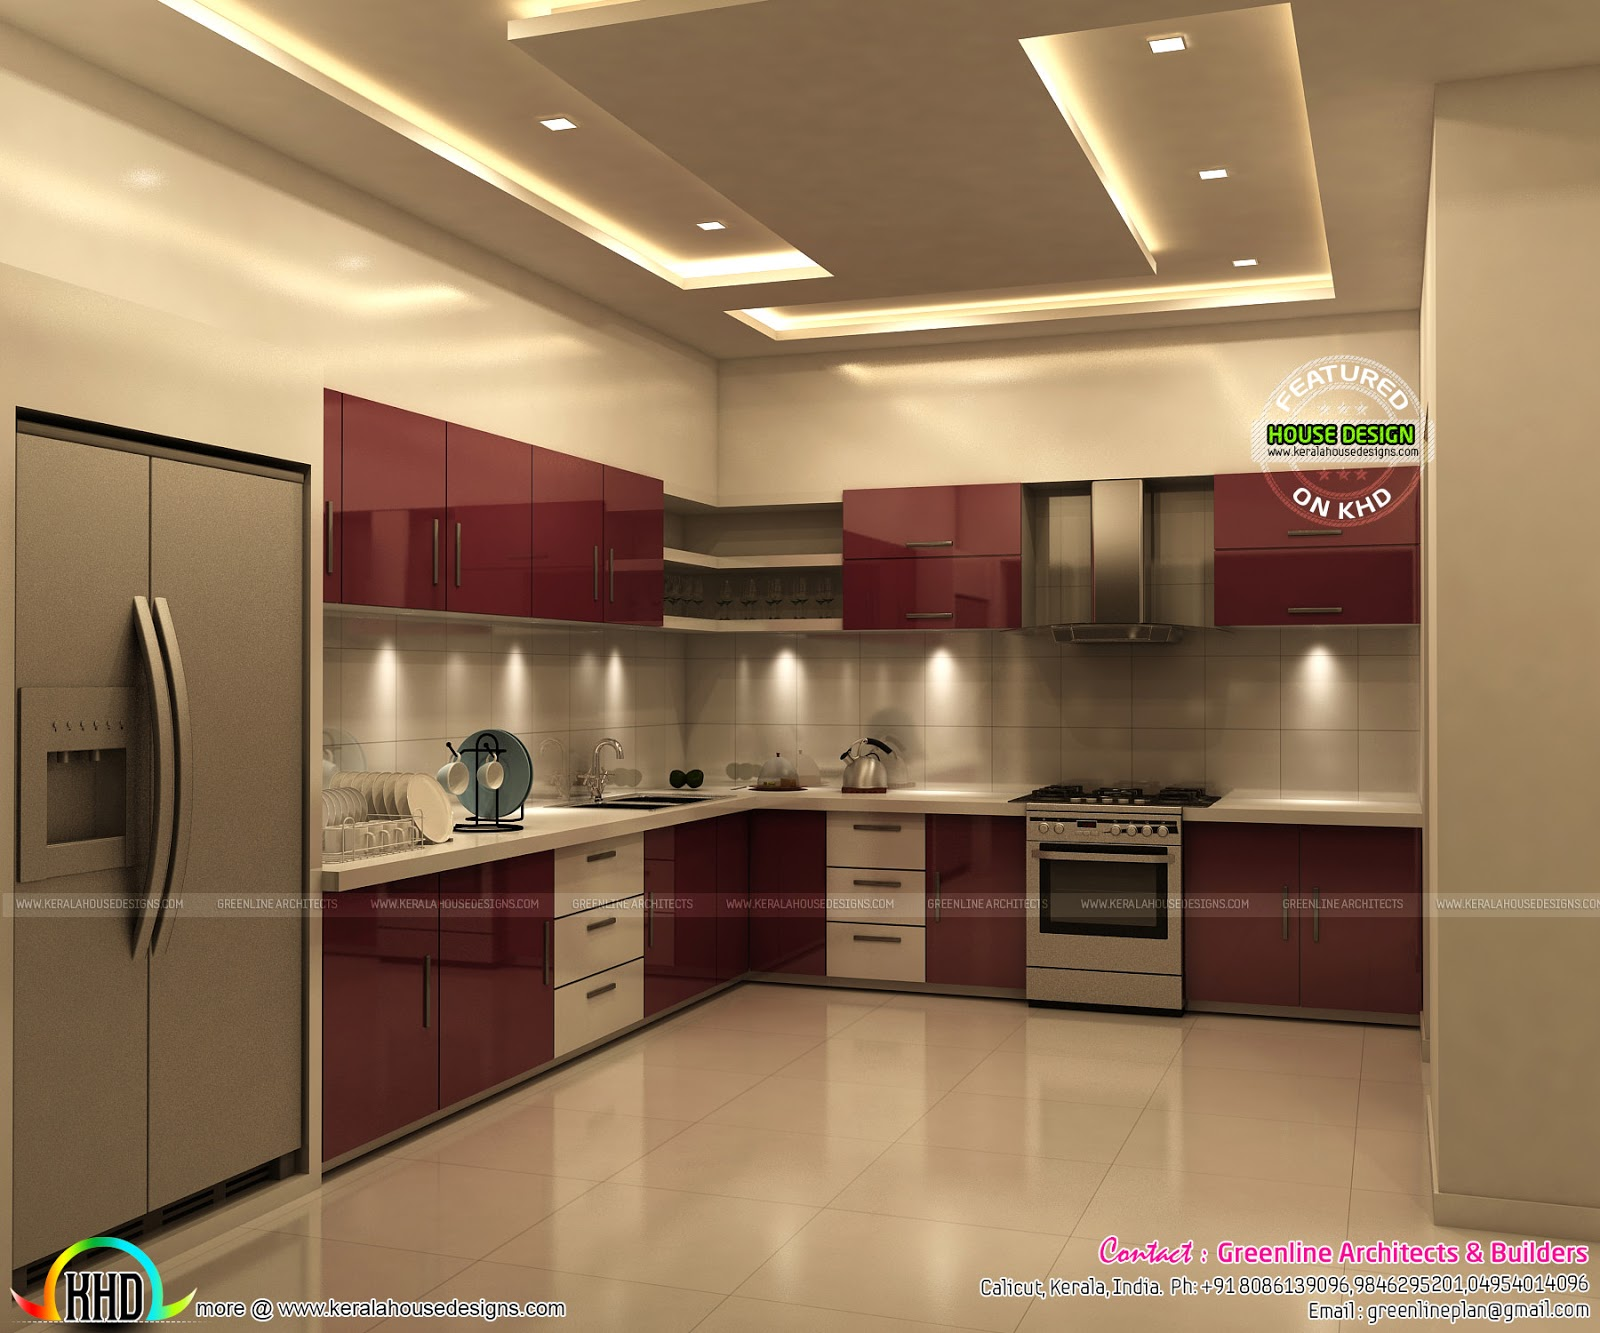 Superb kitchen and bedroom interiors kerala home design for Kerala style kitchen photos